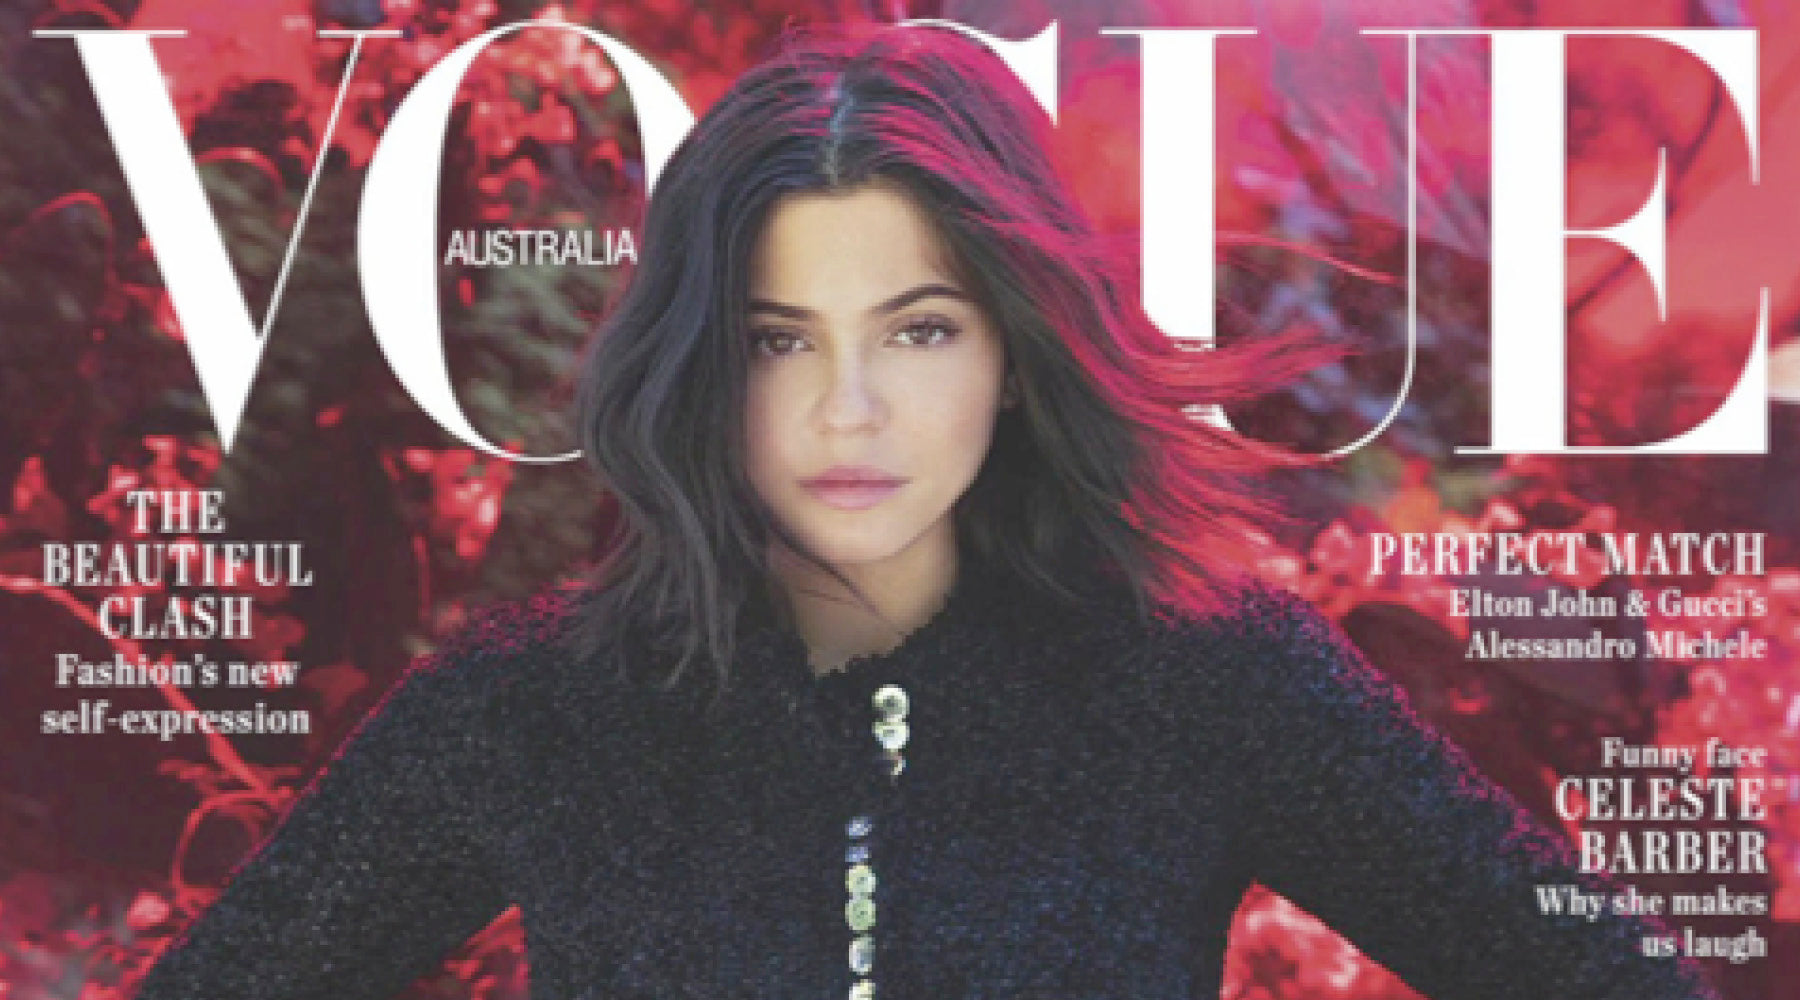 Vogue Australia September 2018 Kylie Jenner Cover Image featuring ASHLEY LIM Femme boots inside